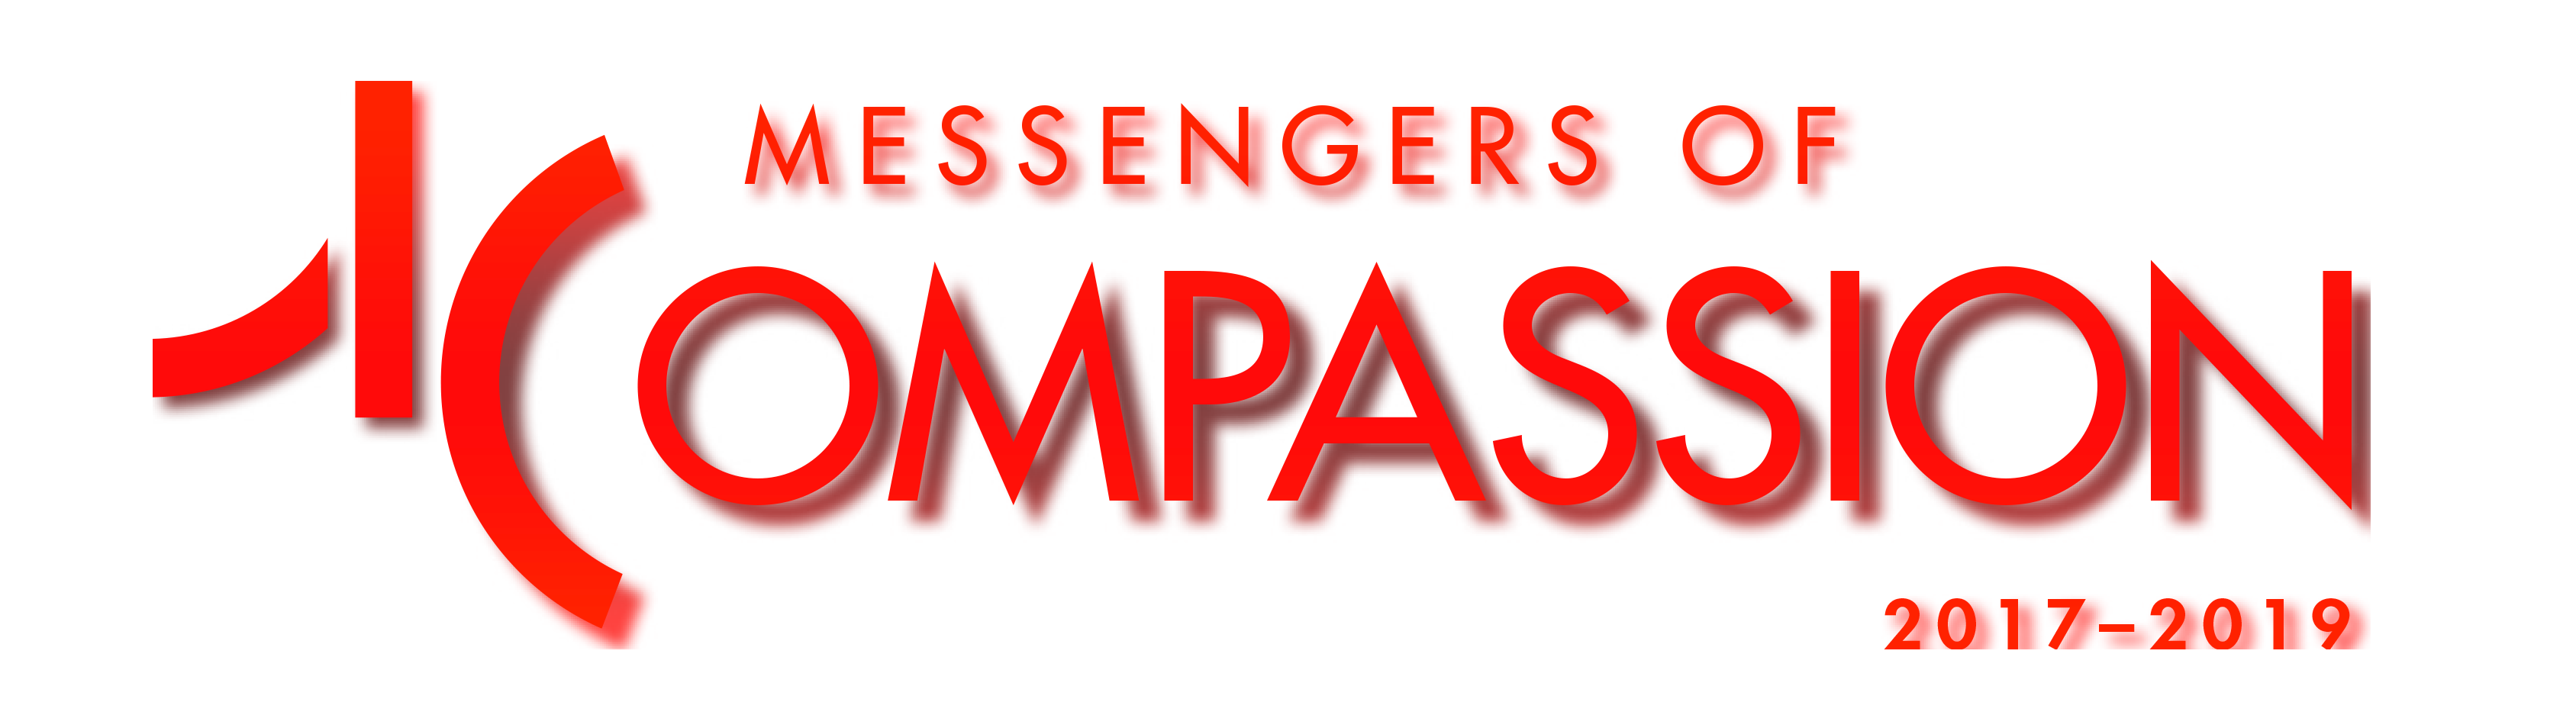 Messengers of Compassion Logo